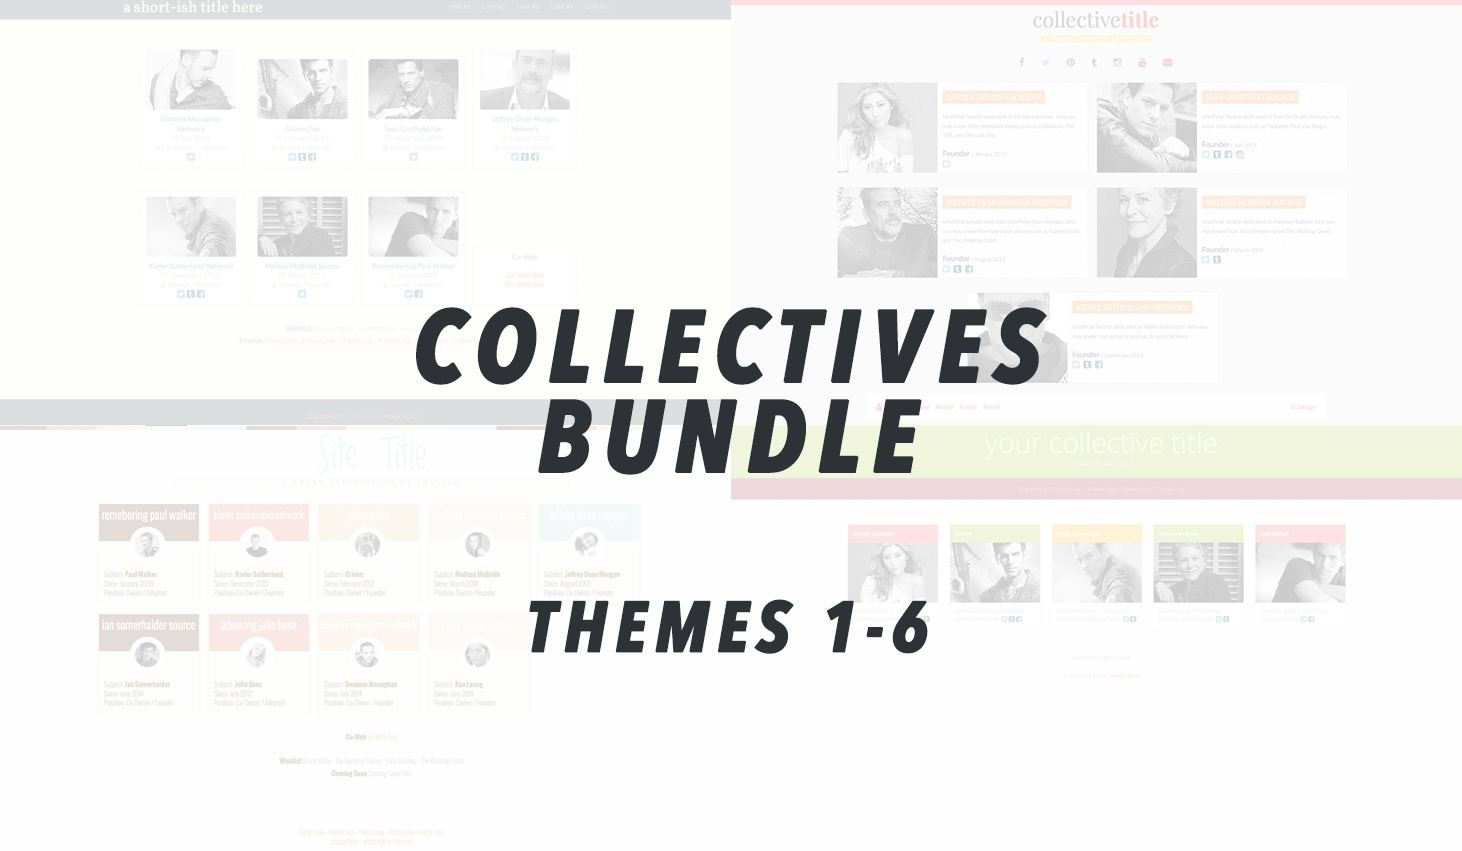 [BUNDLE] Collectives 1-6